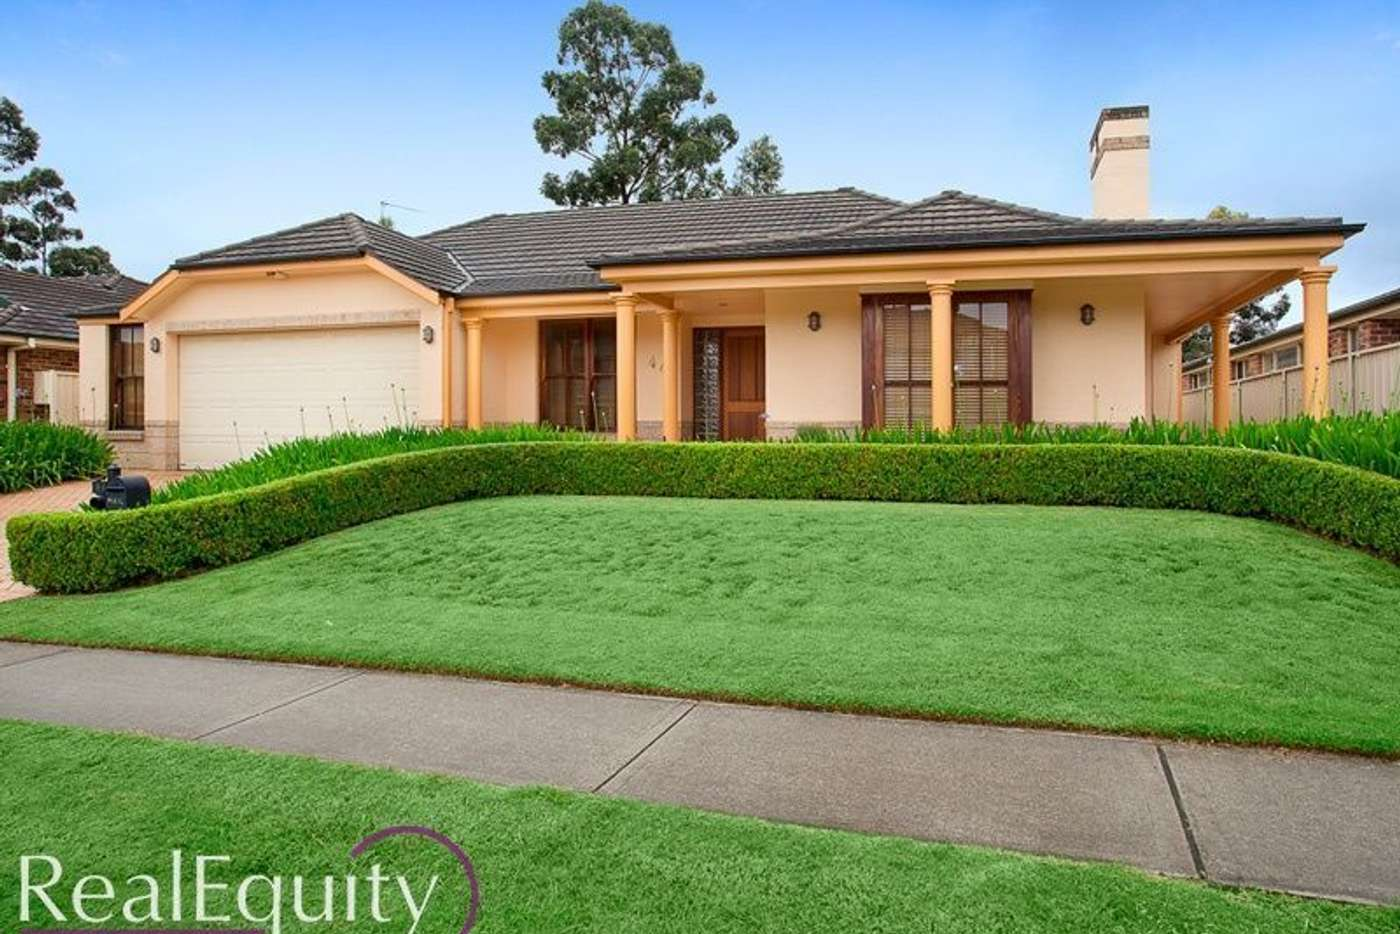 Main view of Homely house listing, 44 Yachtsman Drive, Chipping Norton NSW 2170